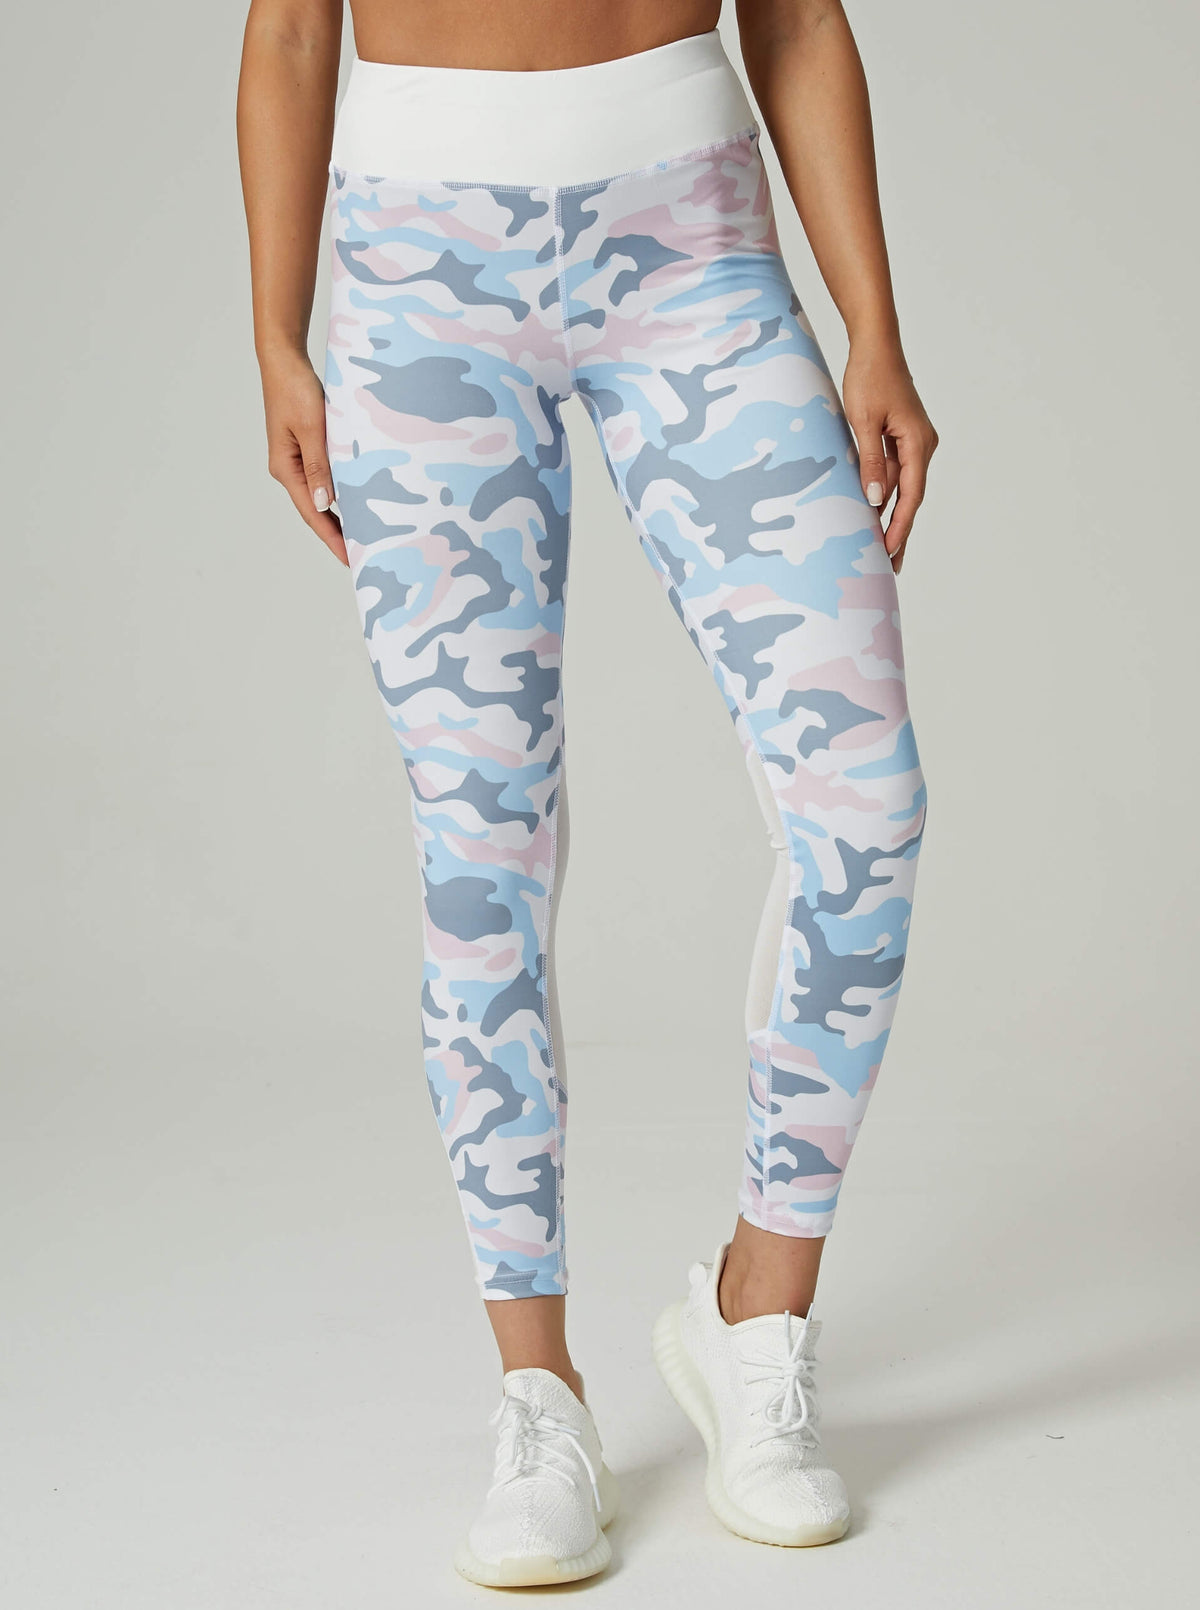 v2 Era Camo Cloud Leggings